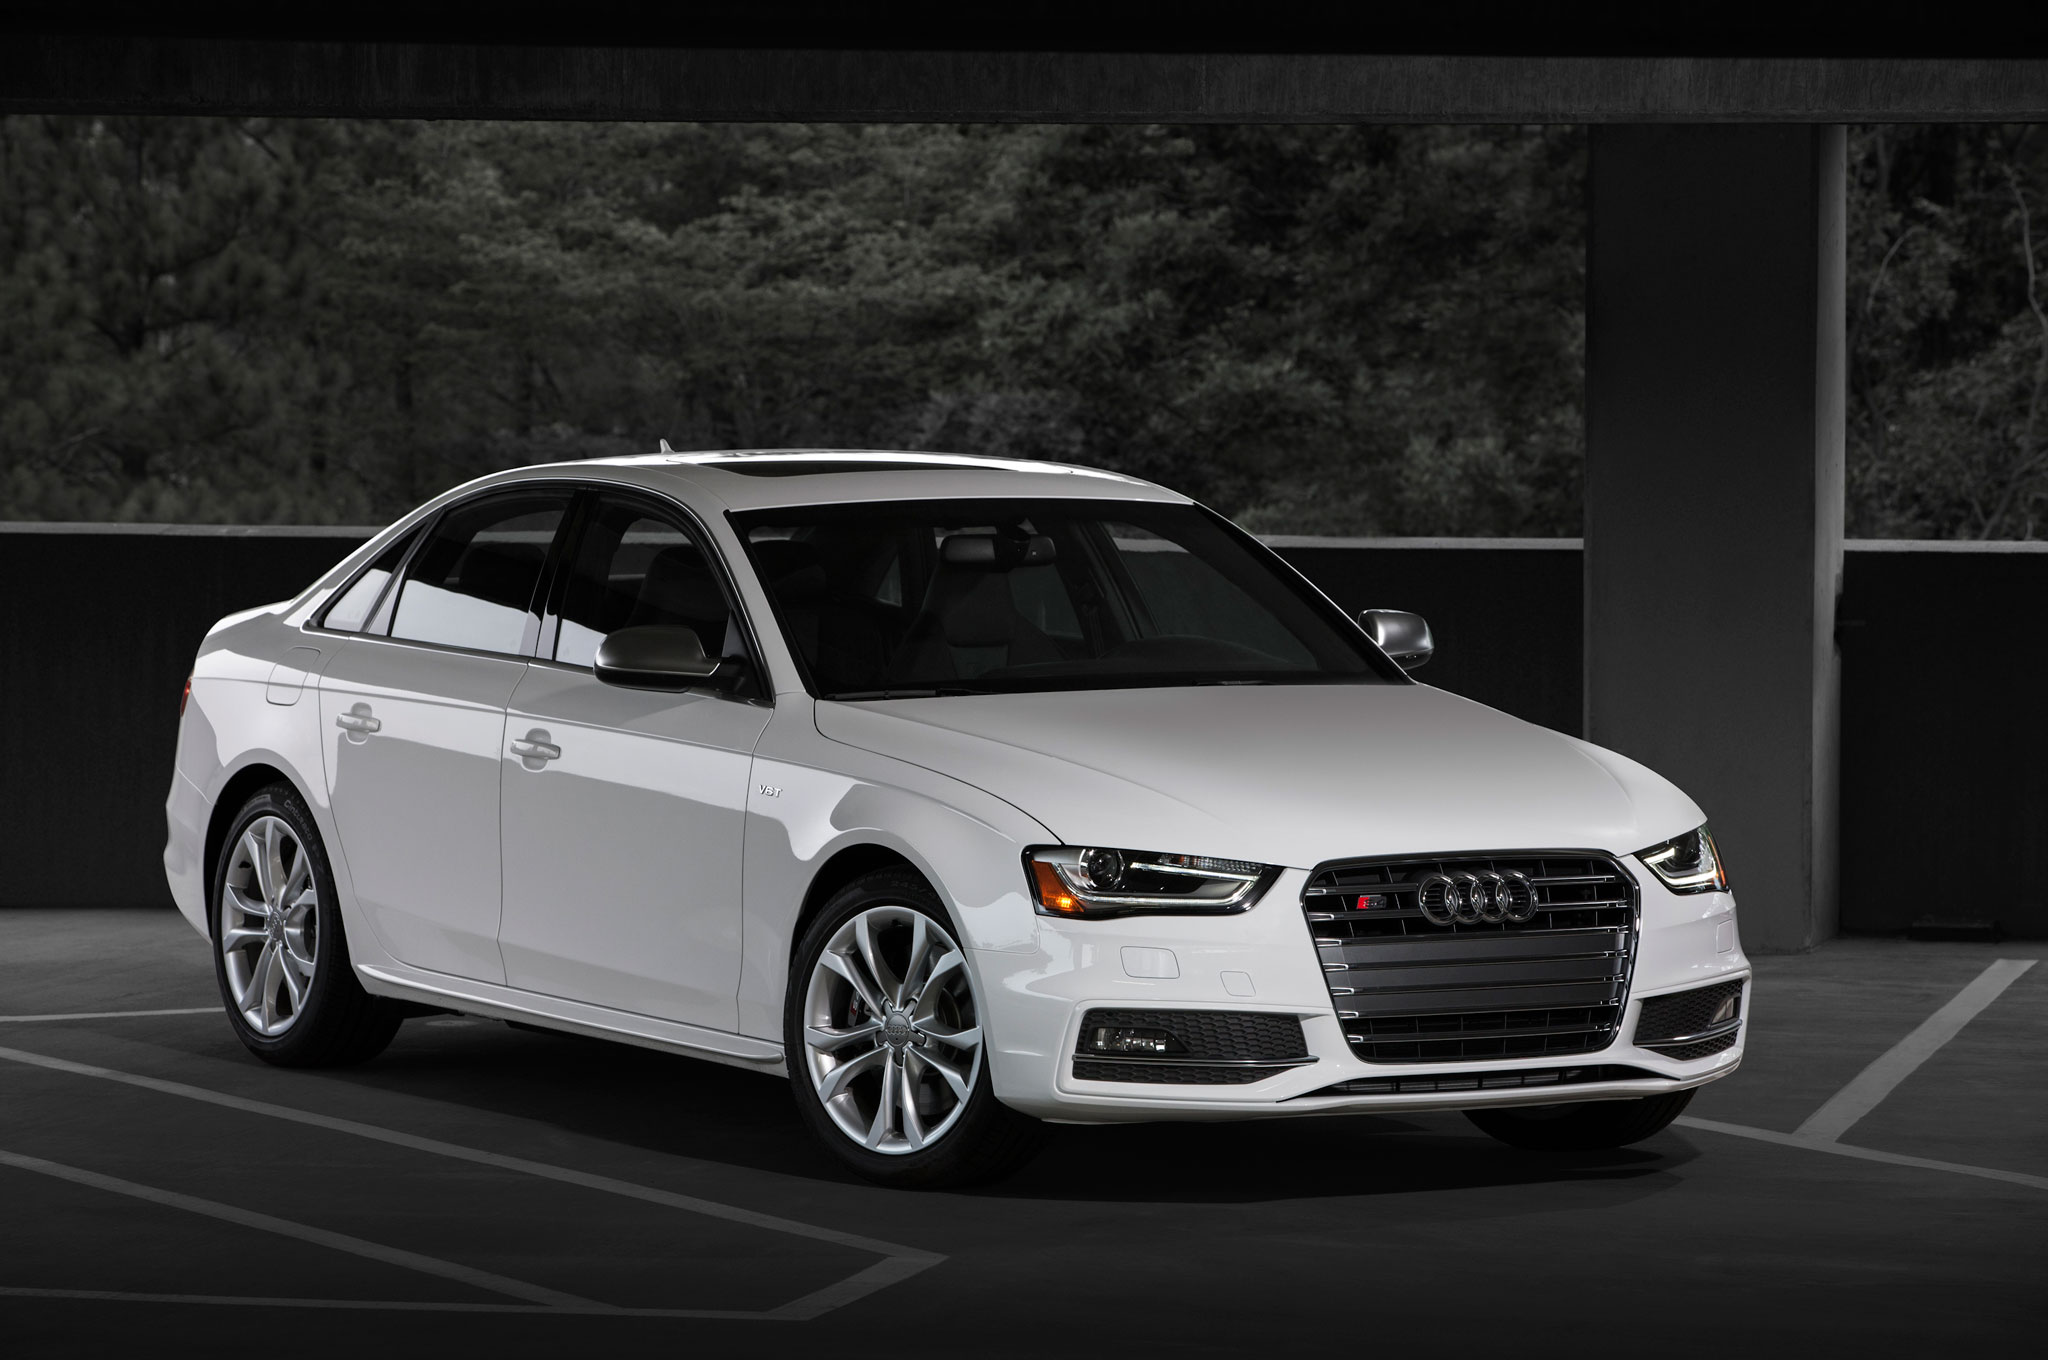 Feature Flick Putting The 2014 Audi S4 Through Its Paces